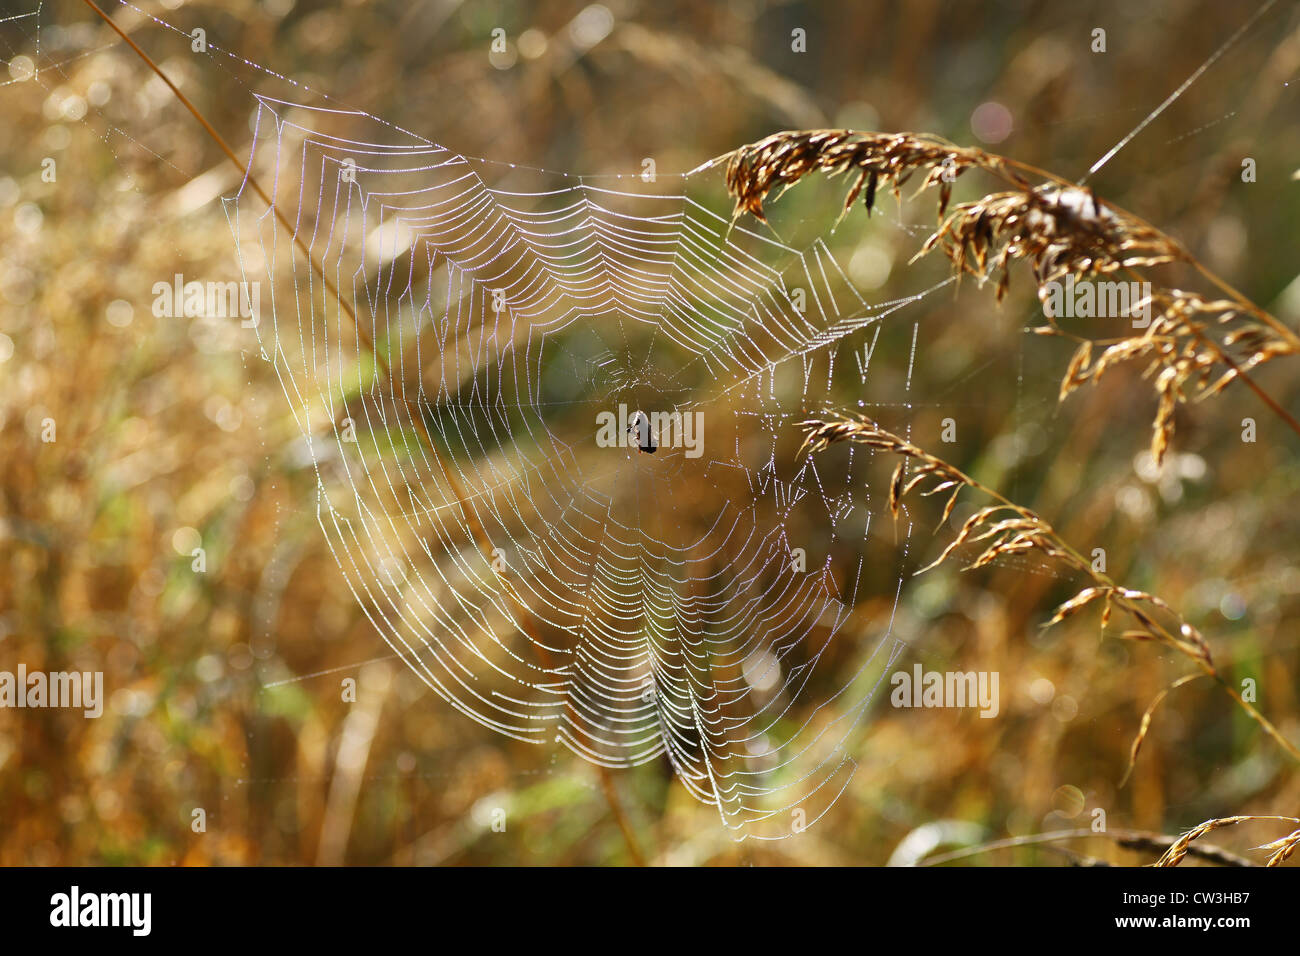 A spider in the middle of it's web on a warm summers morning with the light shining through it - Stock Image